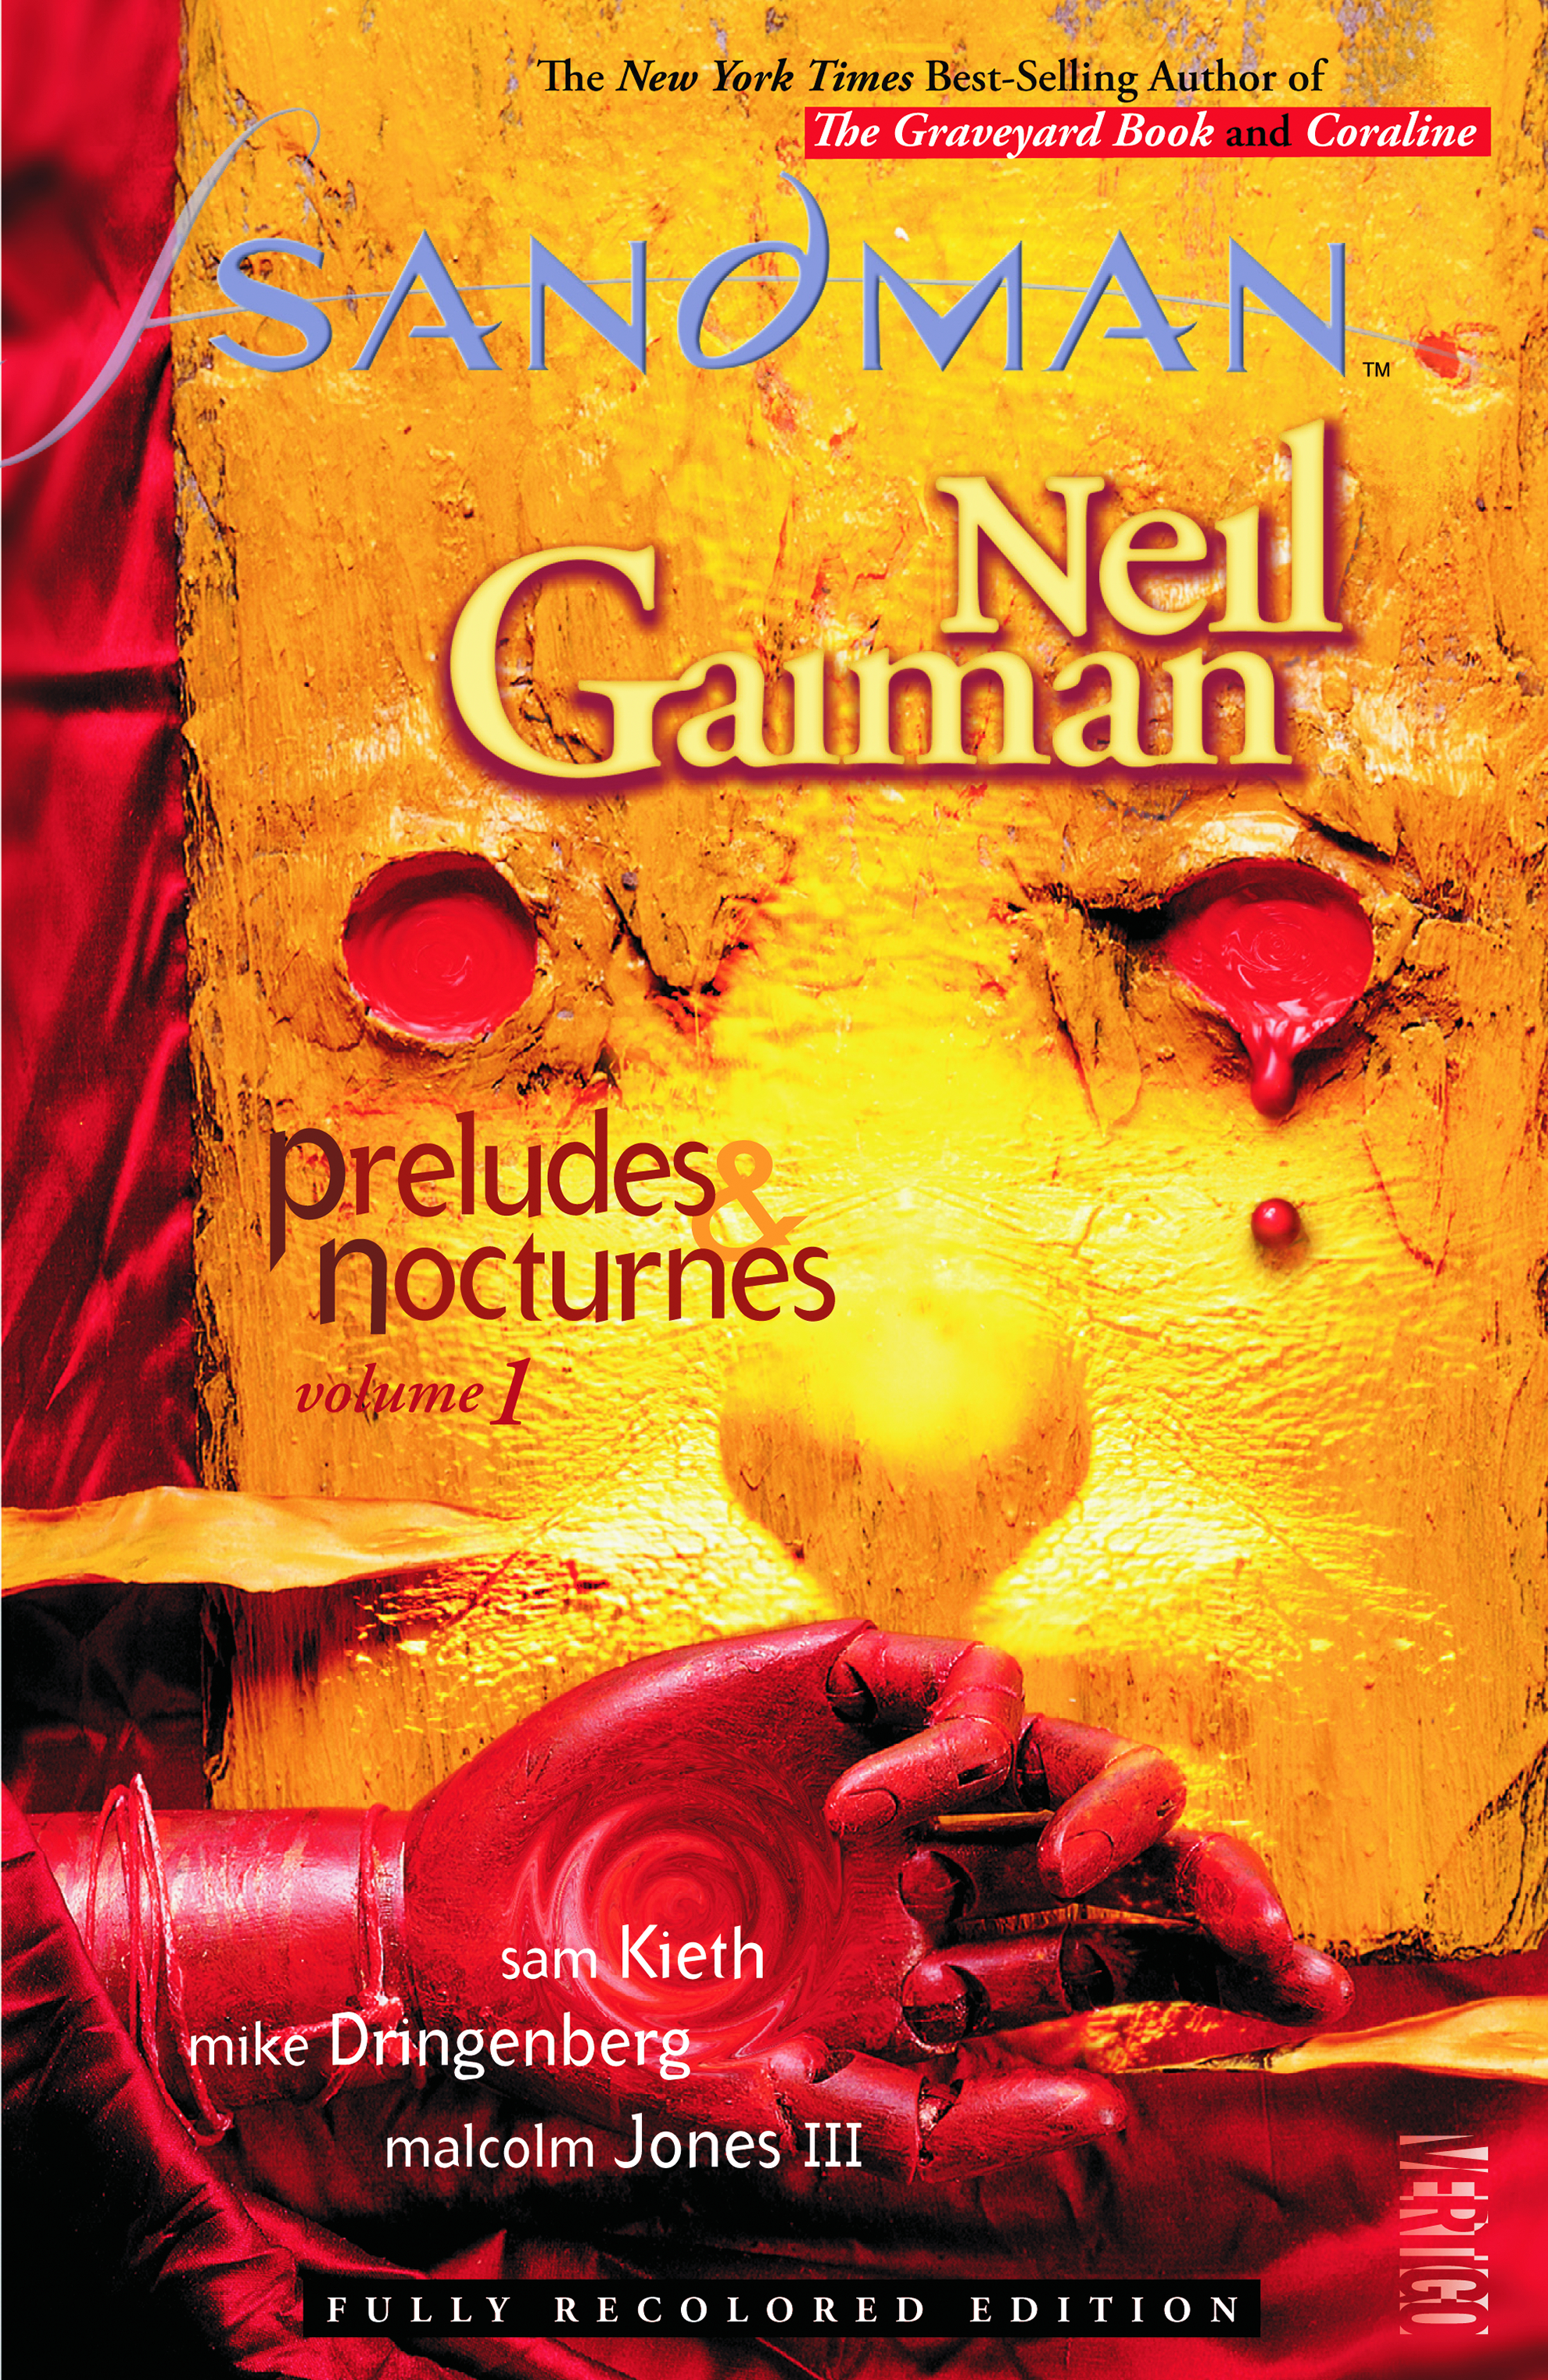 SANDMAN TP VOL 01 PRELUDES & NOCTURNES NEW ED (MR)